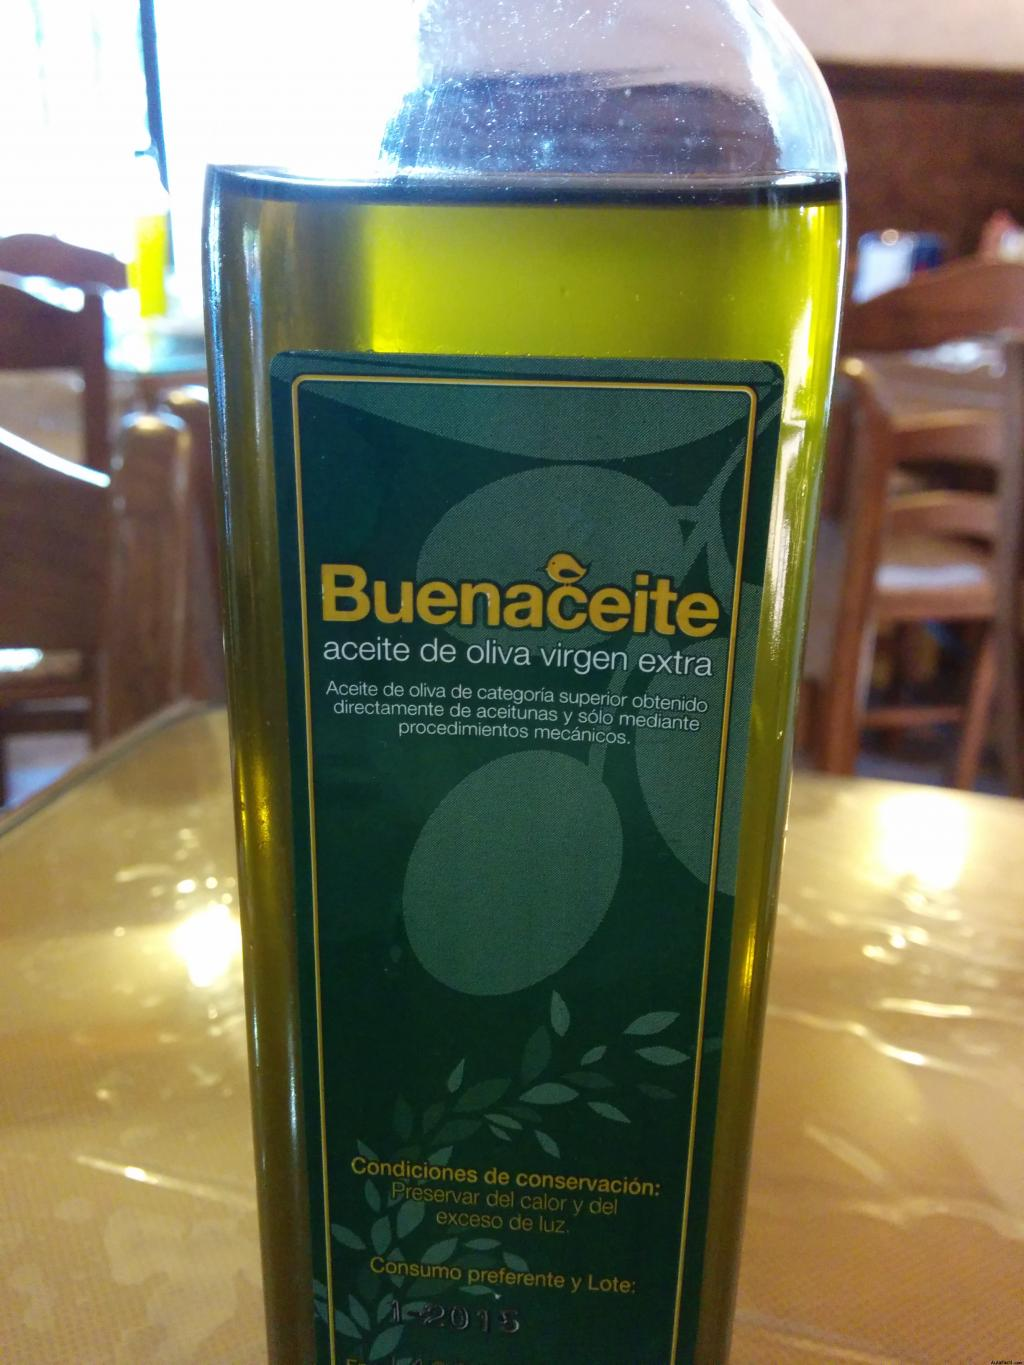 Marketing marca de aceite